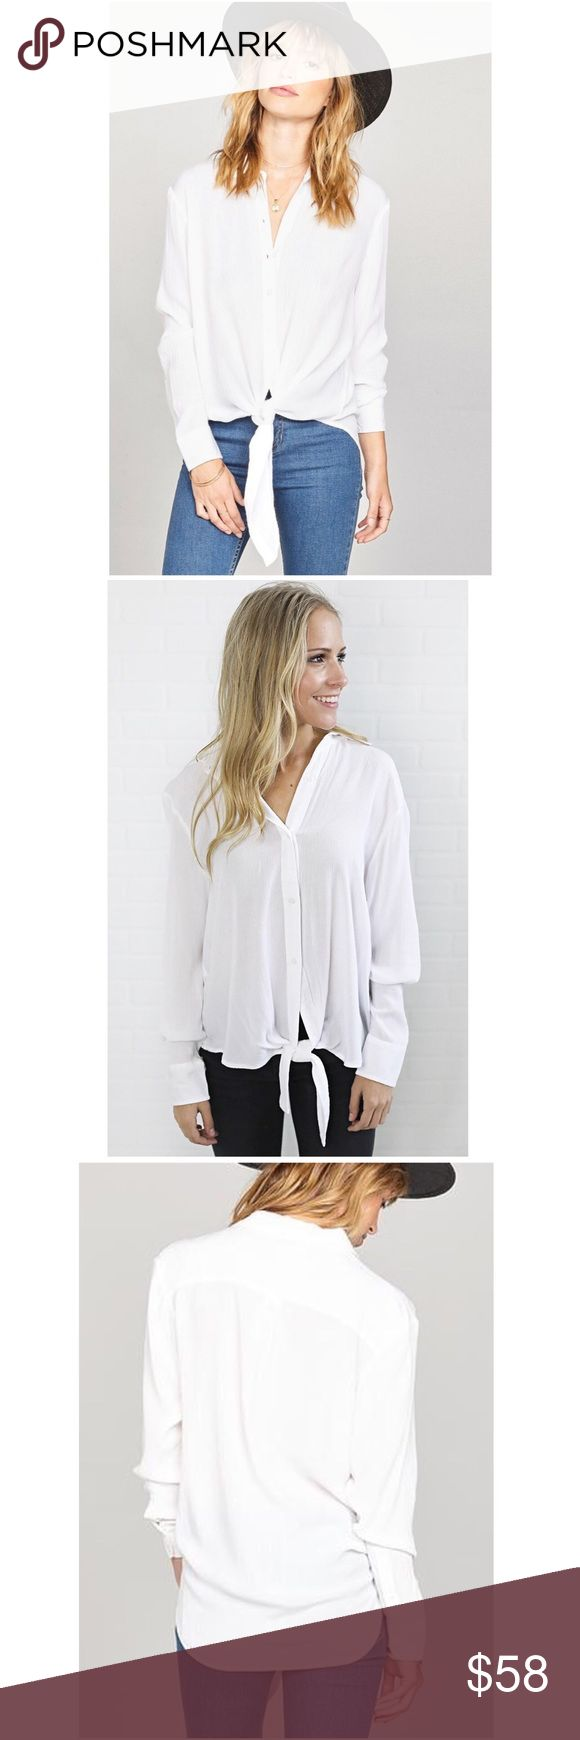 """Perfect White Top Oui oui. The C'est La Vie Woven is a crinkle and pigment dyed top with a front tie and button placket. An Amuse staple with its soft gauze touch and classic button down style, we'll definitely be getting this in every color.   *100% Viscose Gauze Crepe  *Turn garment inside out before hand wash cold  *Hang dry   Measurements for Small:  Bust: 44""""  Front Length: 35 1/2""""  Back Length: 28""""  Sleeve Length from Shoulder: 31"""" Amuse Society Tops"""